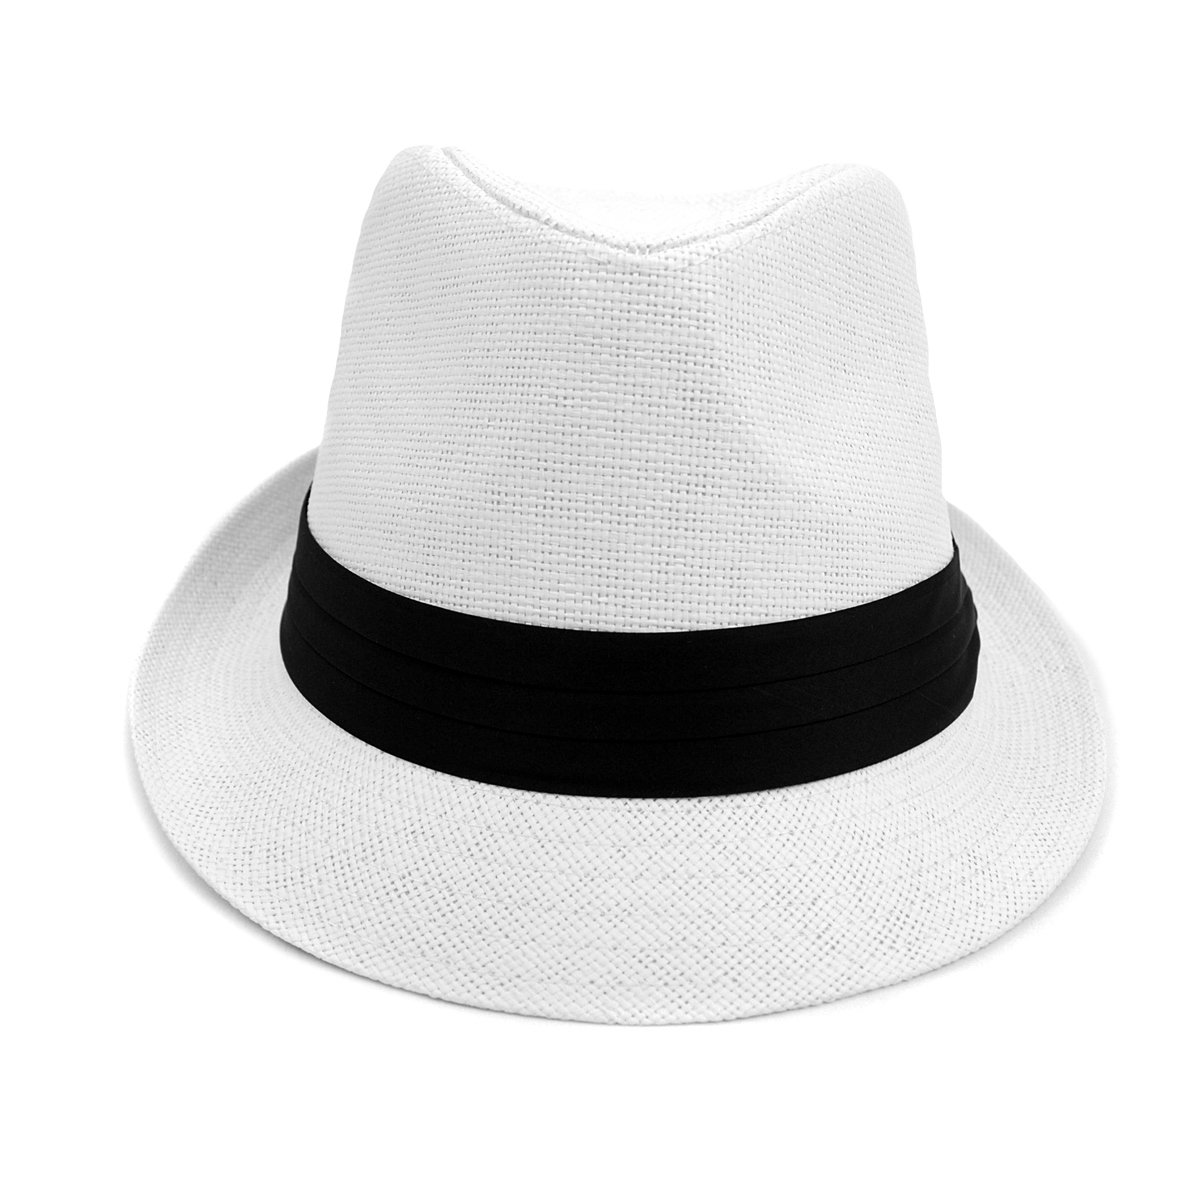 a069dd87db3 Men & Women Summer Fedora Hat with Black Band at Amazon Men's Clothing  store: